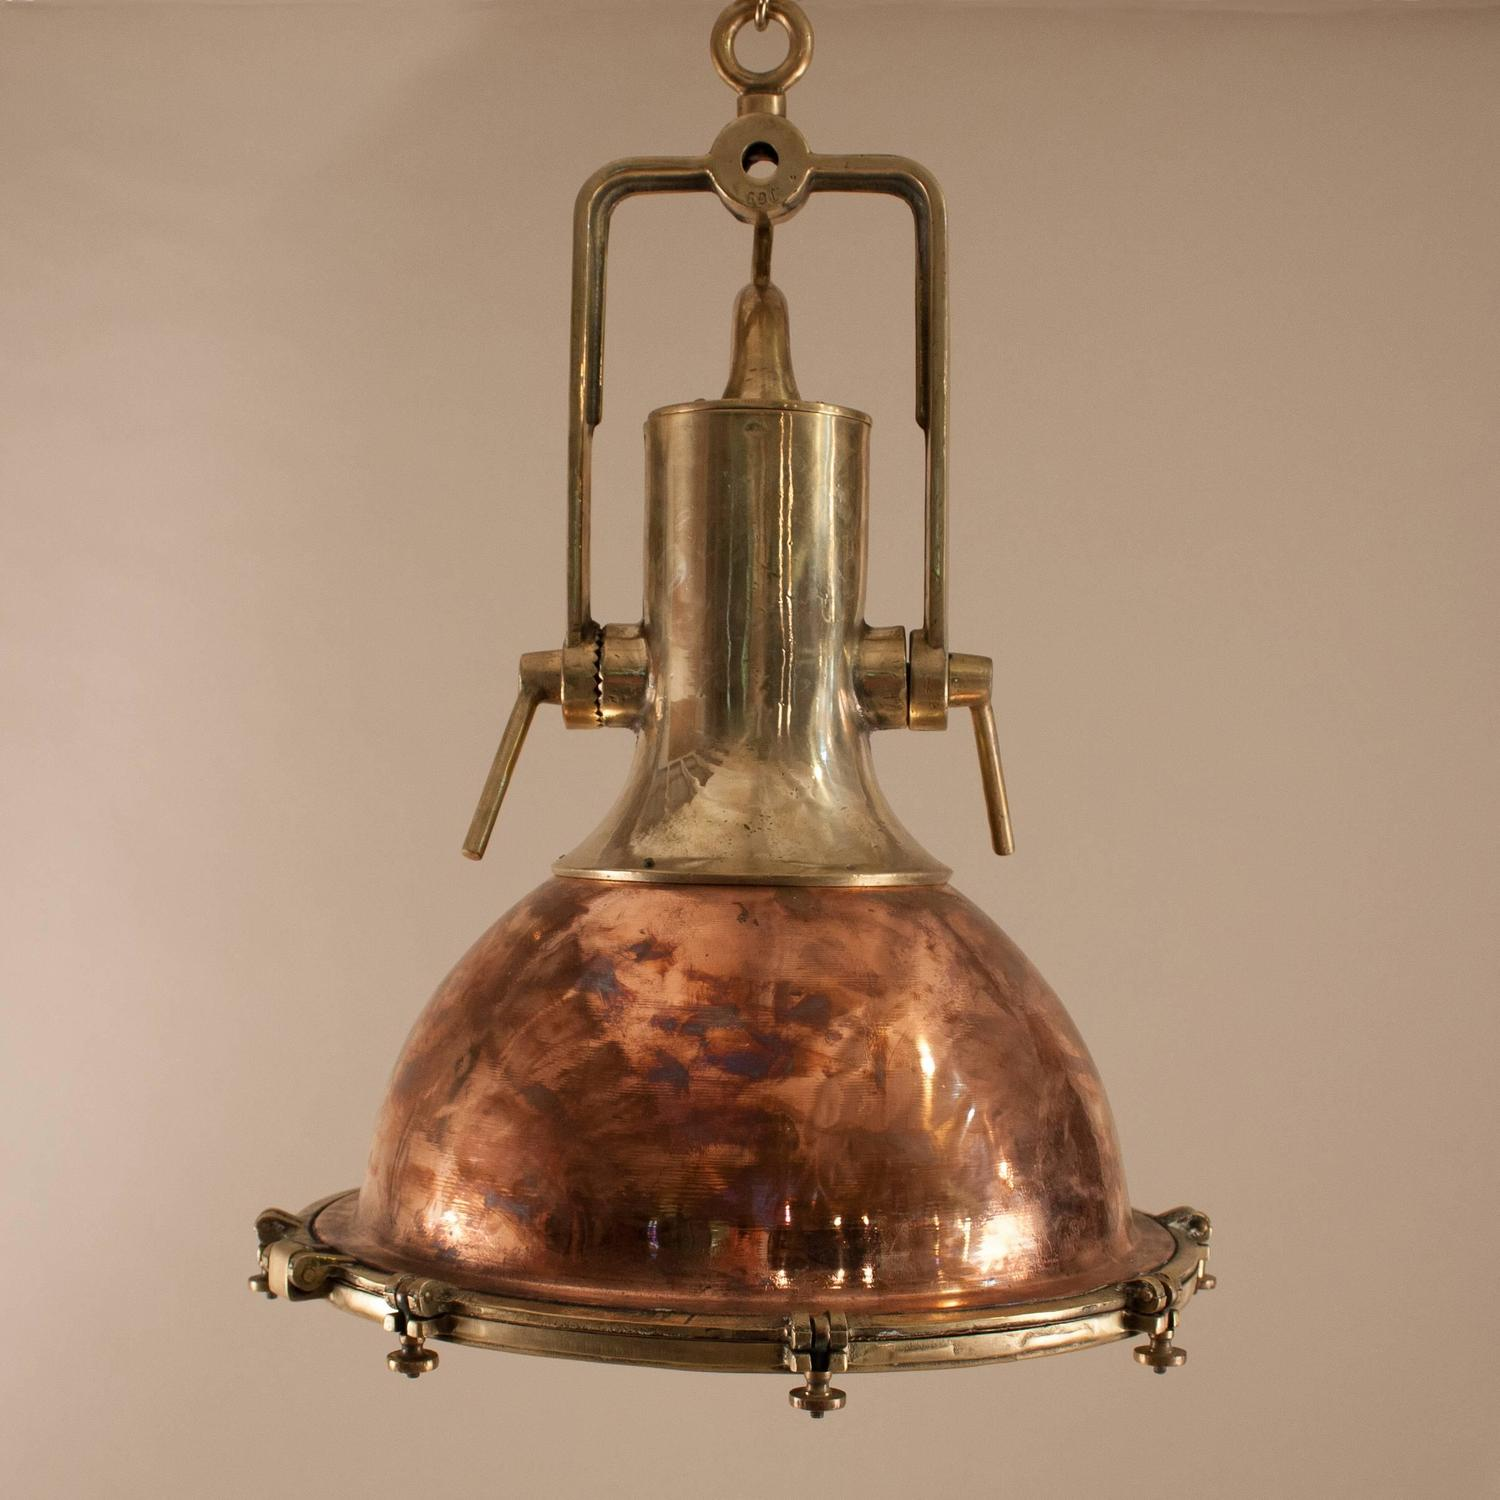 Modern Copper Ring Led Pendant Lighting 10758 Shipping: Pair Of Large Copper And Brass Nautical Pendants For Sale